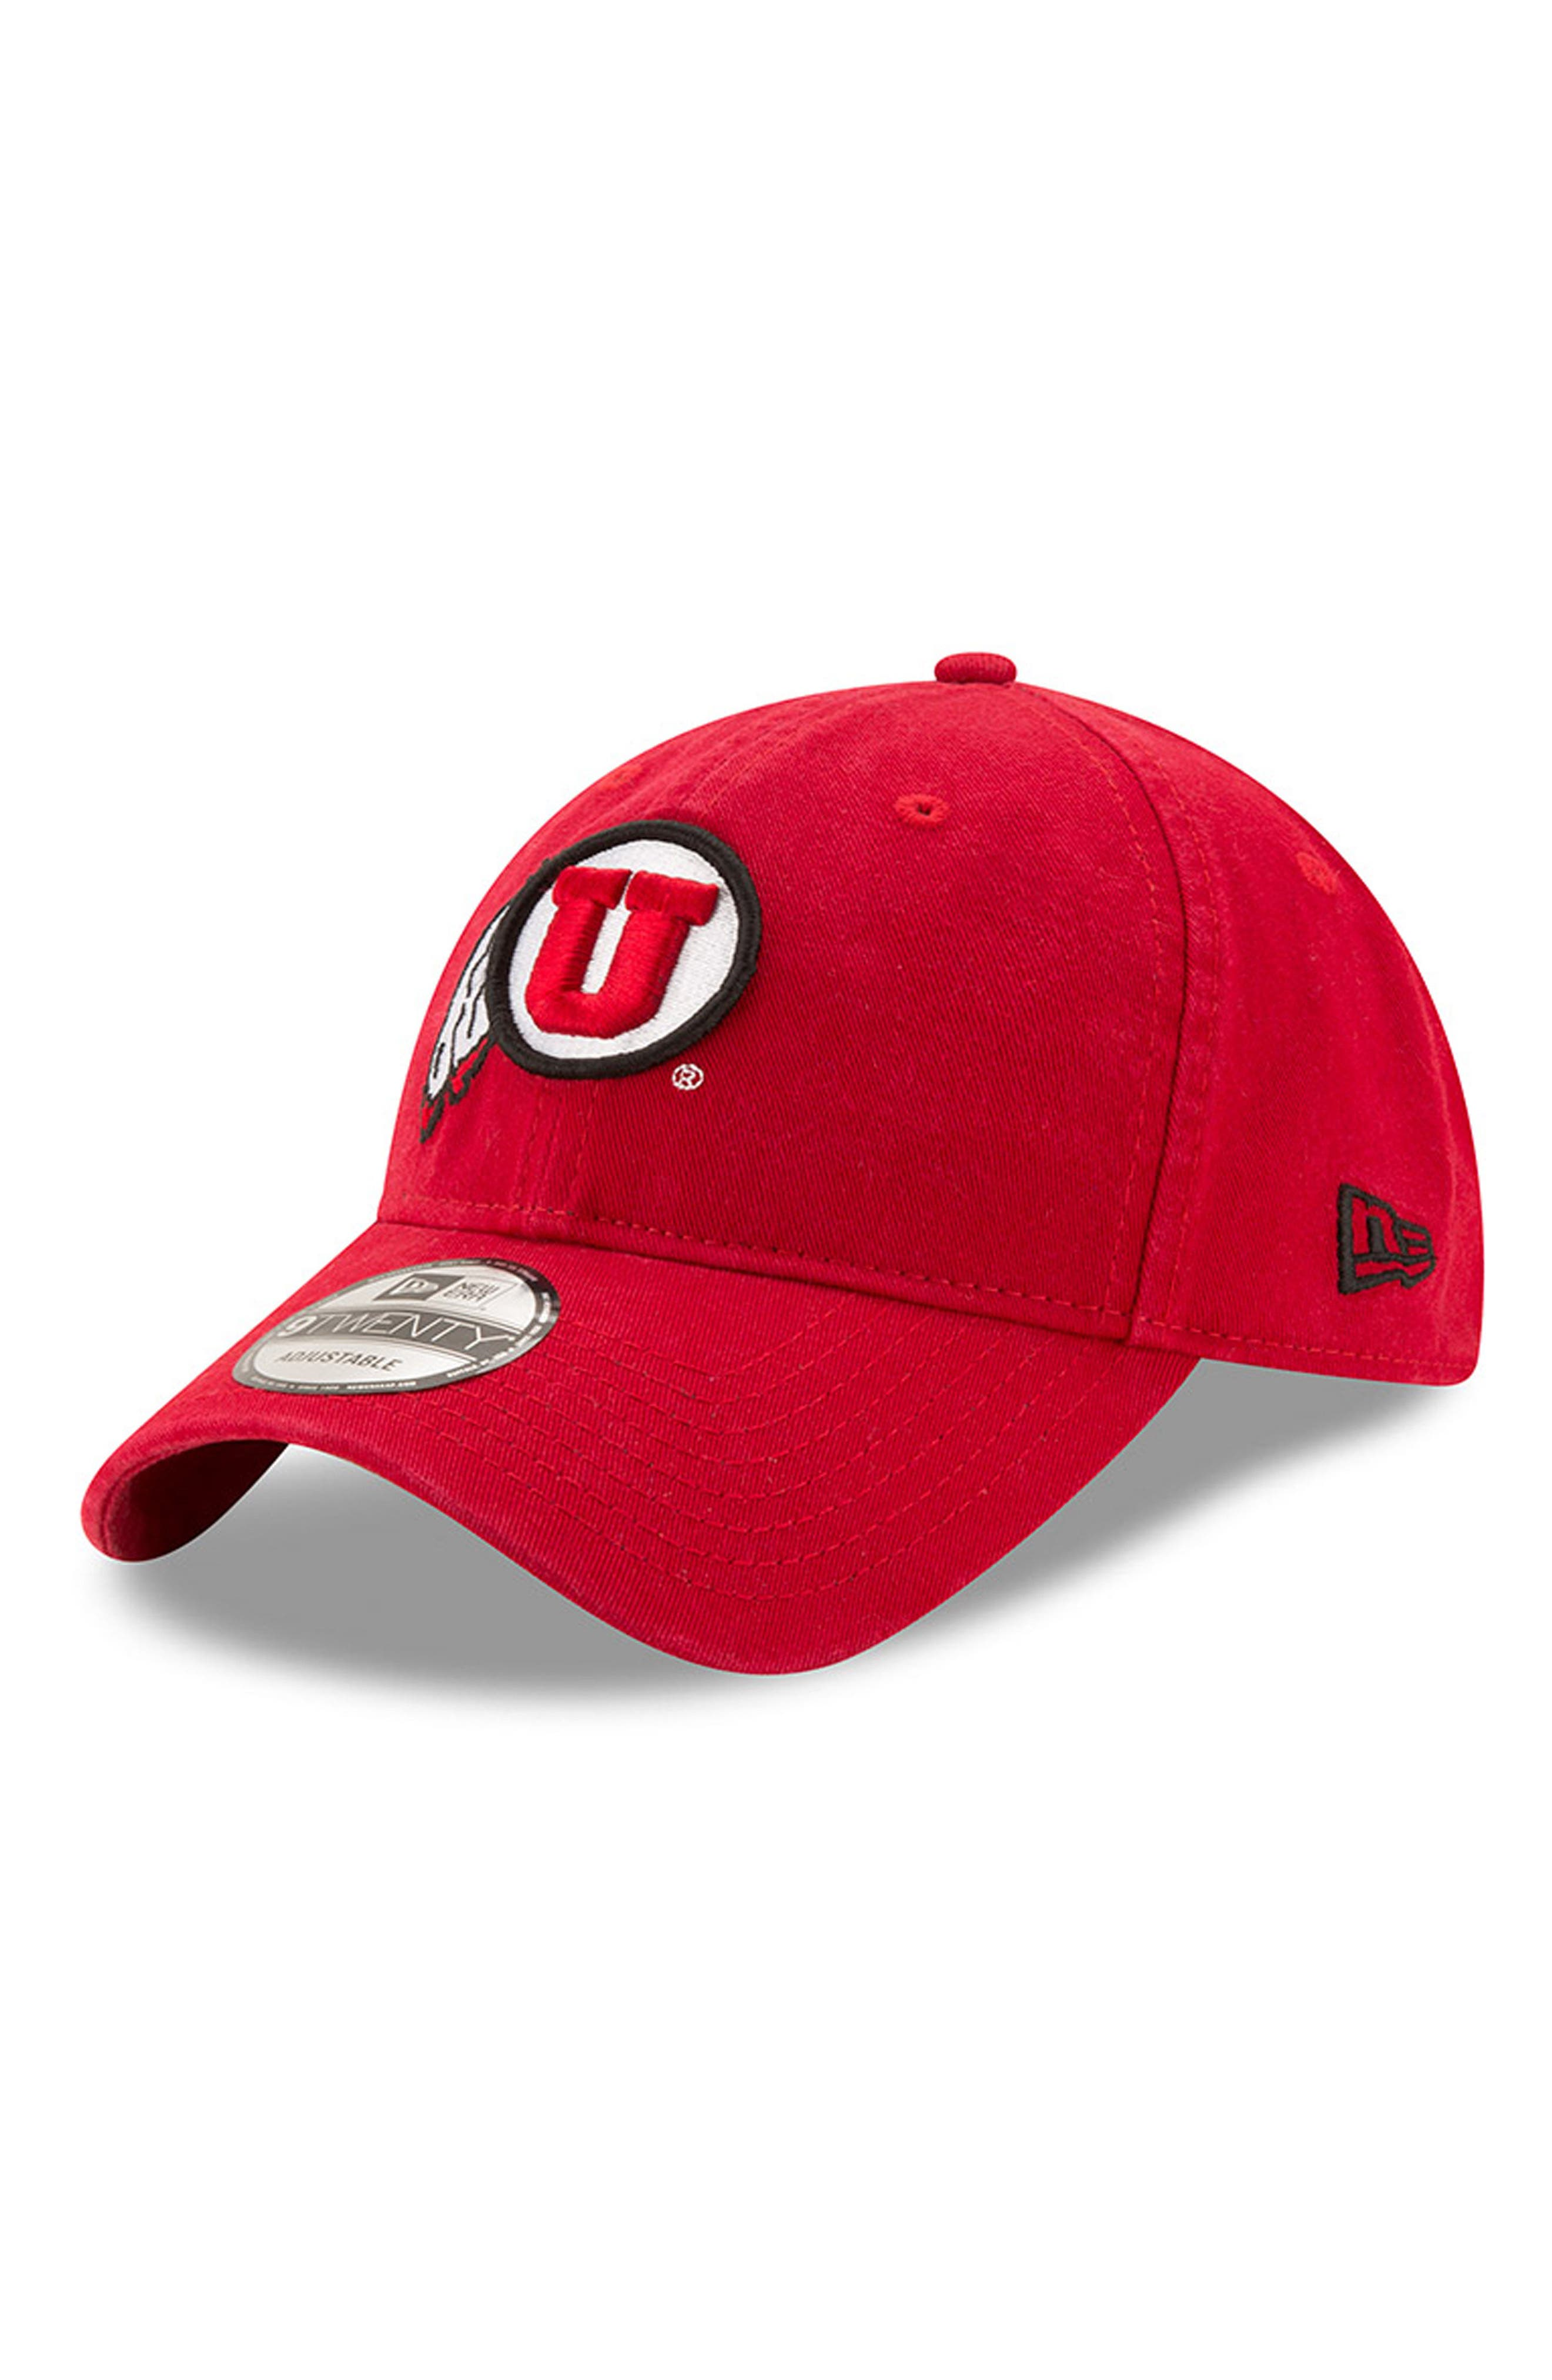 Alternate Image 1 Selected - New Era Collegiate Core Classic - Utah Utes Baseball Cap